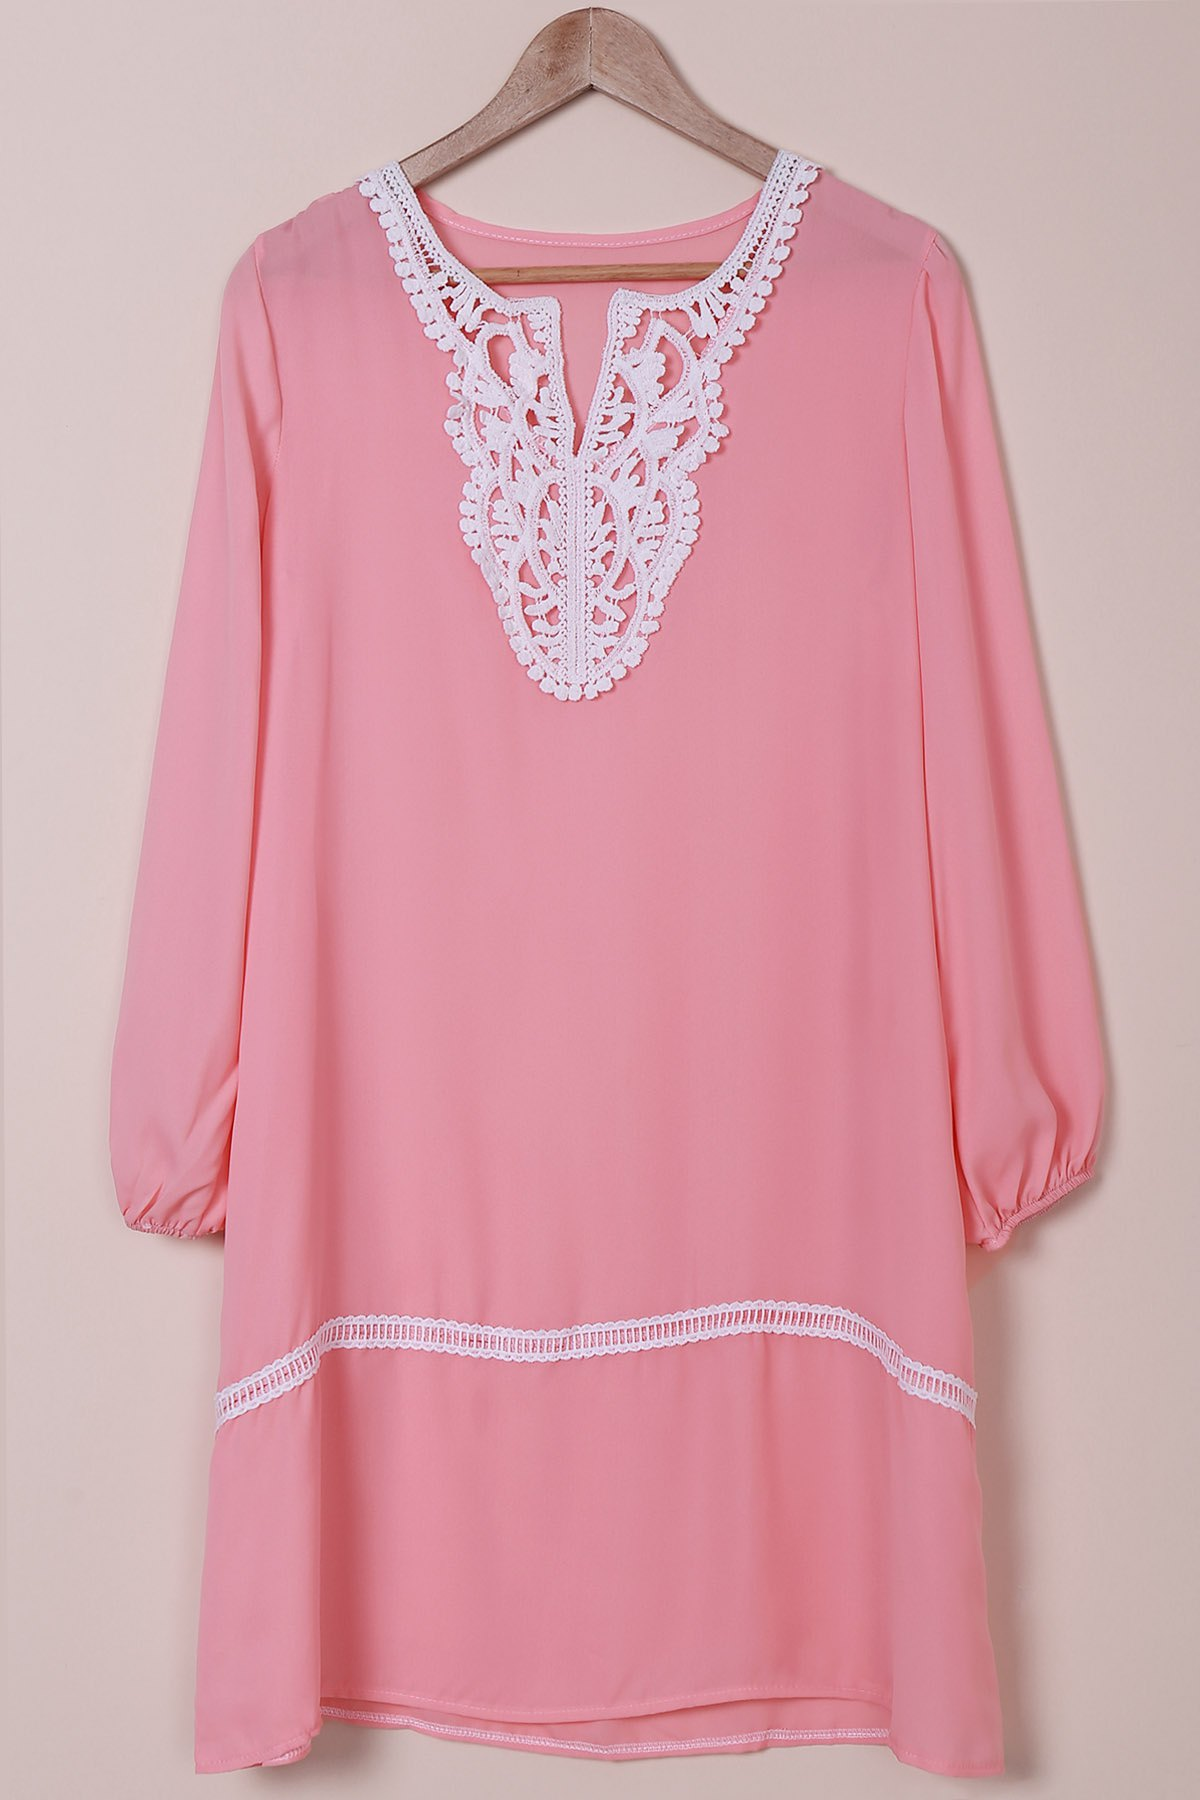 Graceful Long Sleeve V-Neck Hollow Out Loose-Fitting Women's Dress - PINK XL